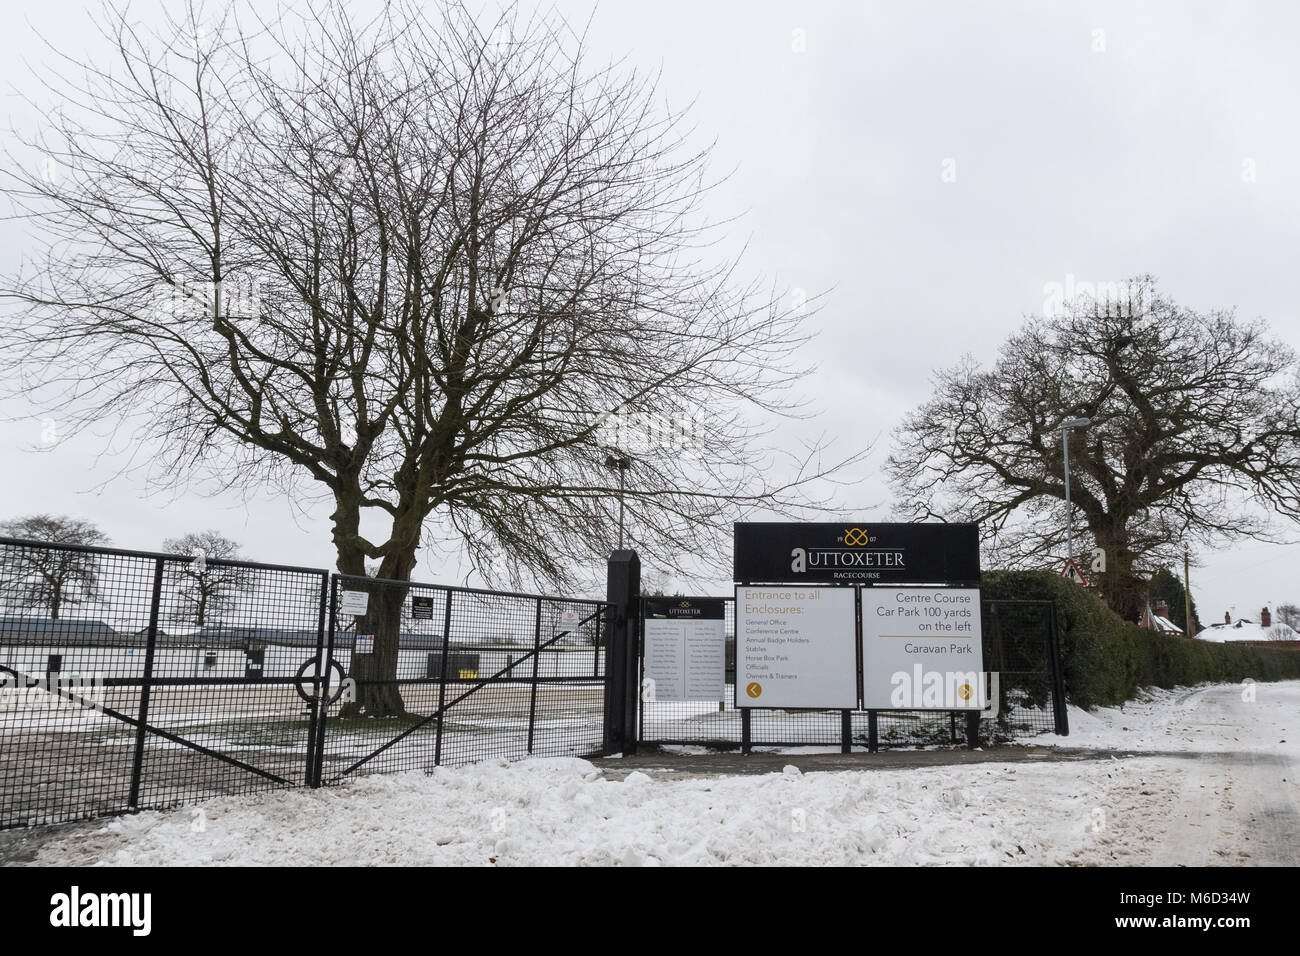 Uttoxeter, Staffordshire, UK. 02nd Mar, 2018. UK Weather: Uttoxeter Racecourse gates remain shut as snow fall from - Stock Image